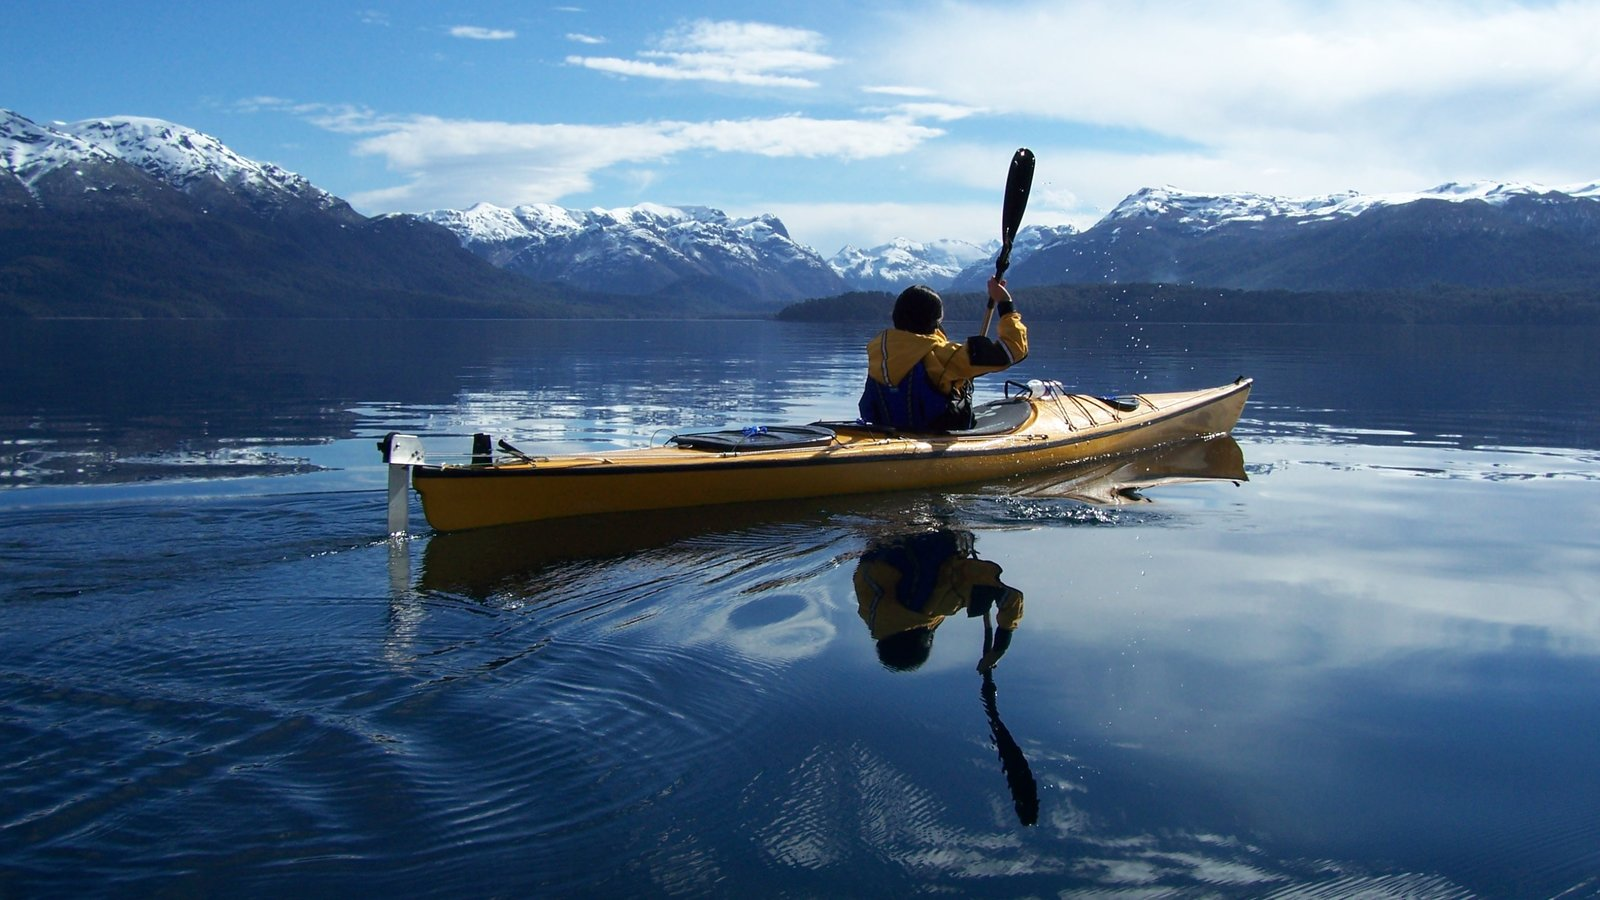 Patagonia Region showing mountains, landscape views and kayaking or canoeing